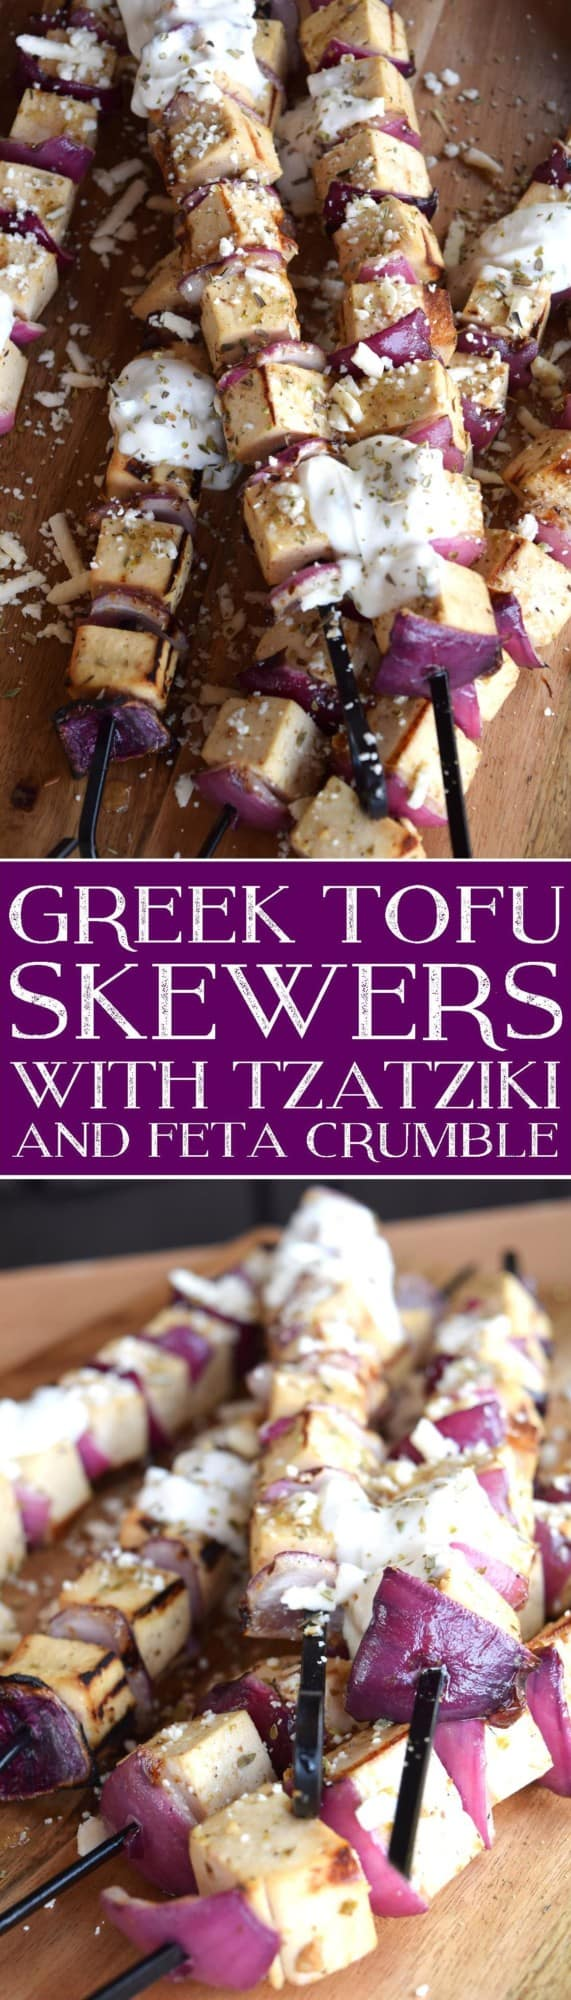 Greek Tofu Skewers with Tzatziki and Feta Crumble